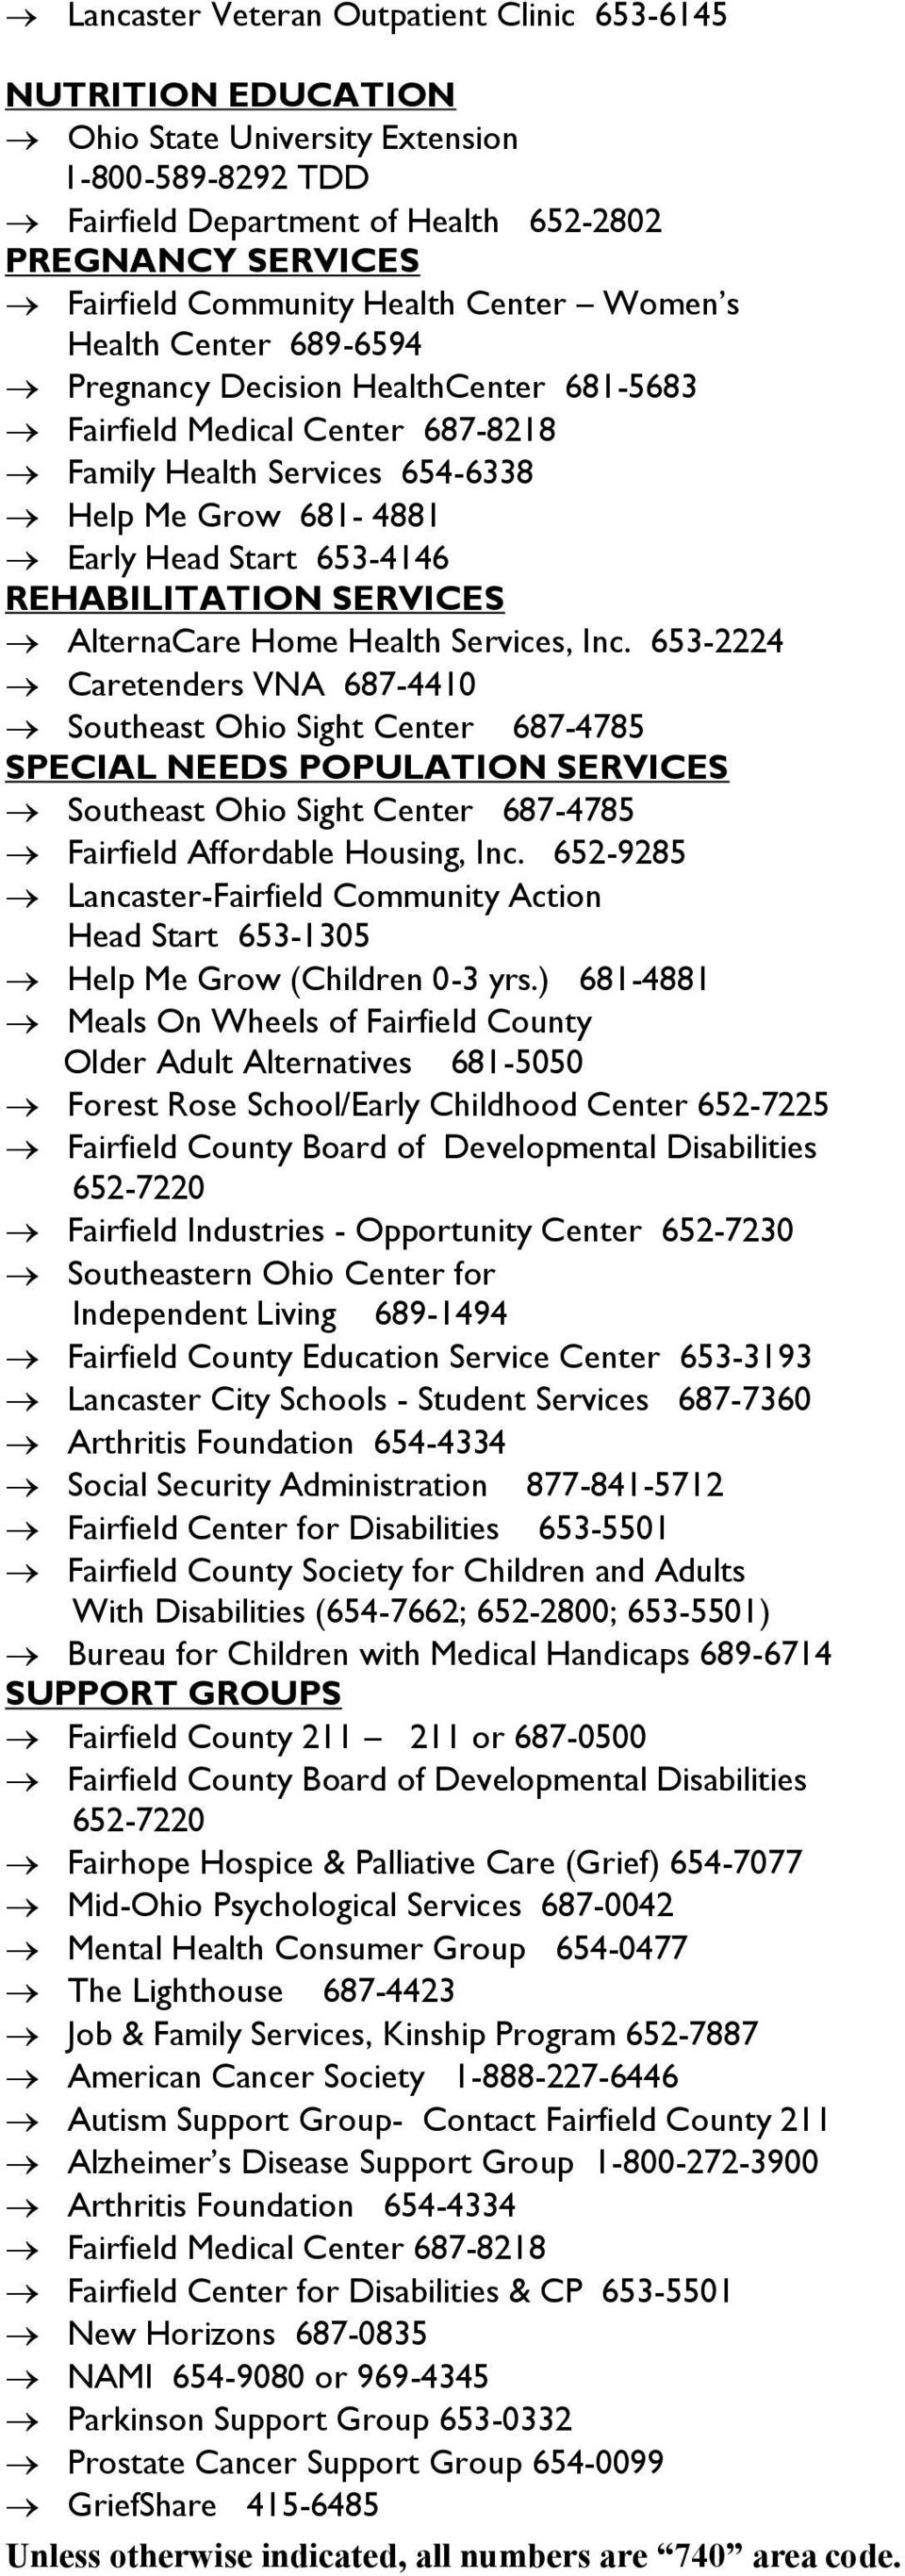 REHABILITATION SERVICES SPECIAL NEEDS POPULATION SERVICES Fairfield Affordable Housing, Inc. 652-9285 Lancaster-Fairfield Community Action Head Start 653-1305 Help Me Grow (Children 0-3 yrs.